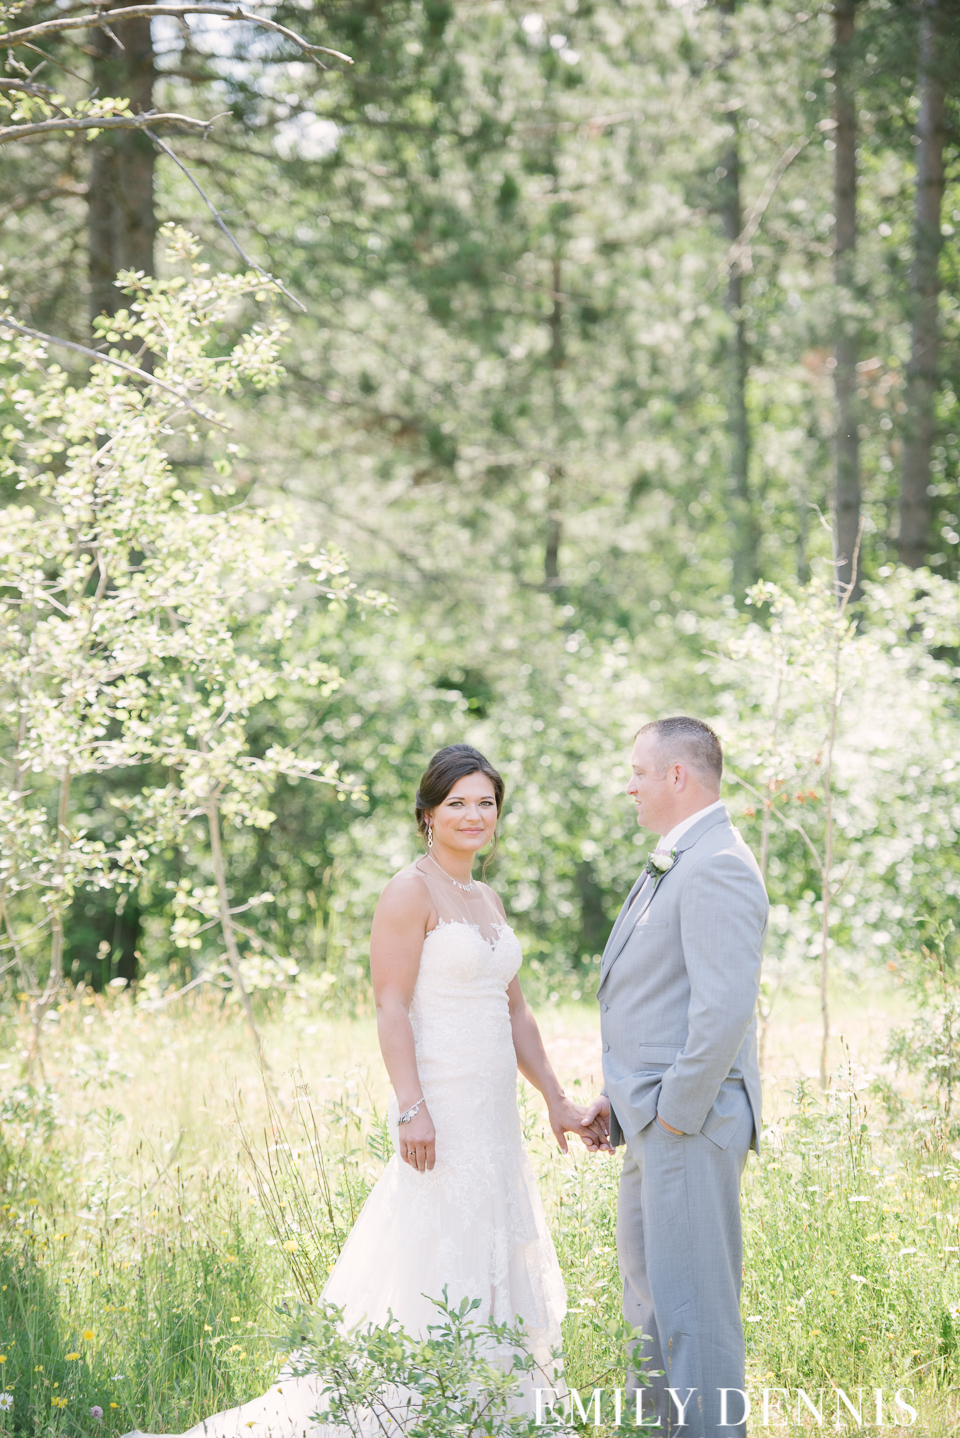 EMILY_DENNIS_PHOTOGRAPHY-52